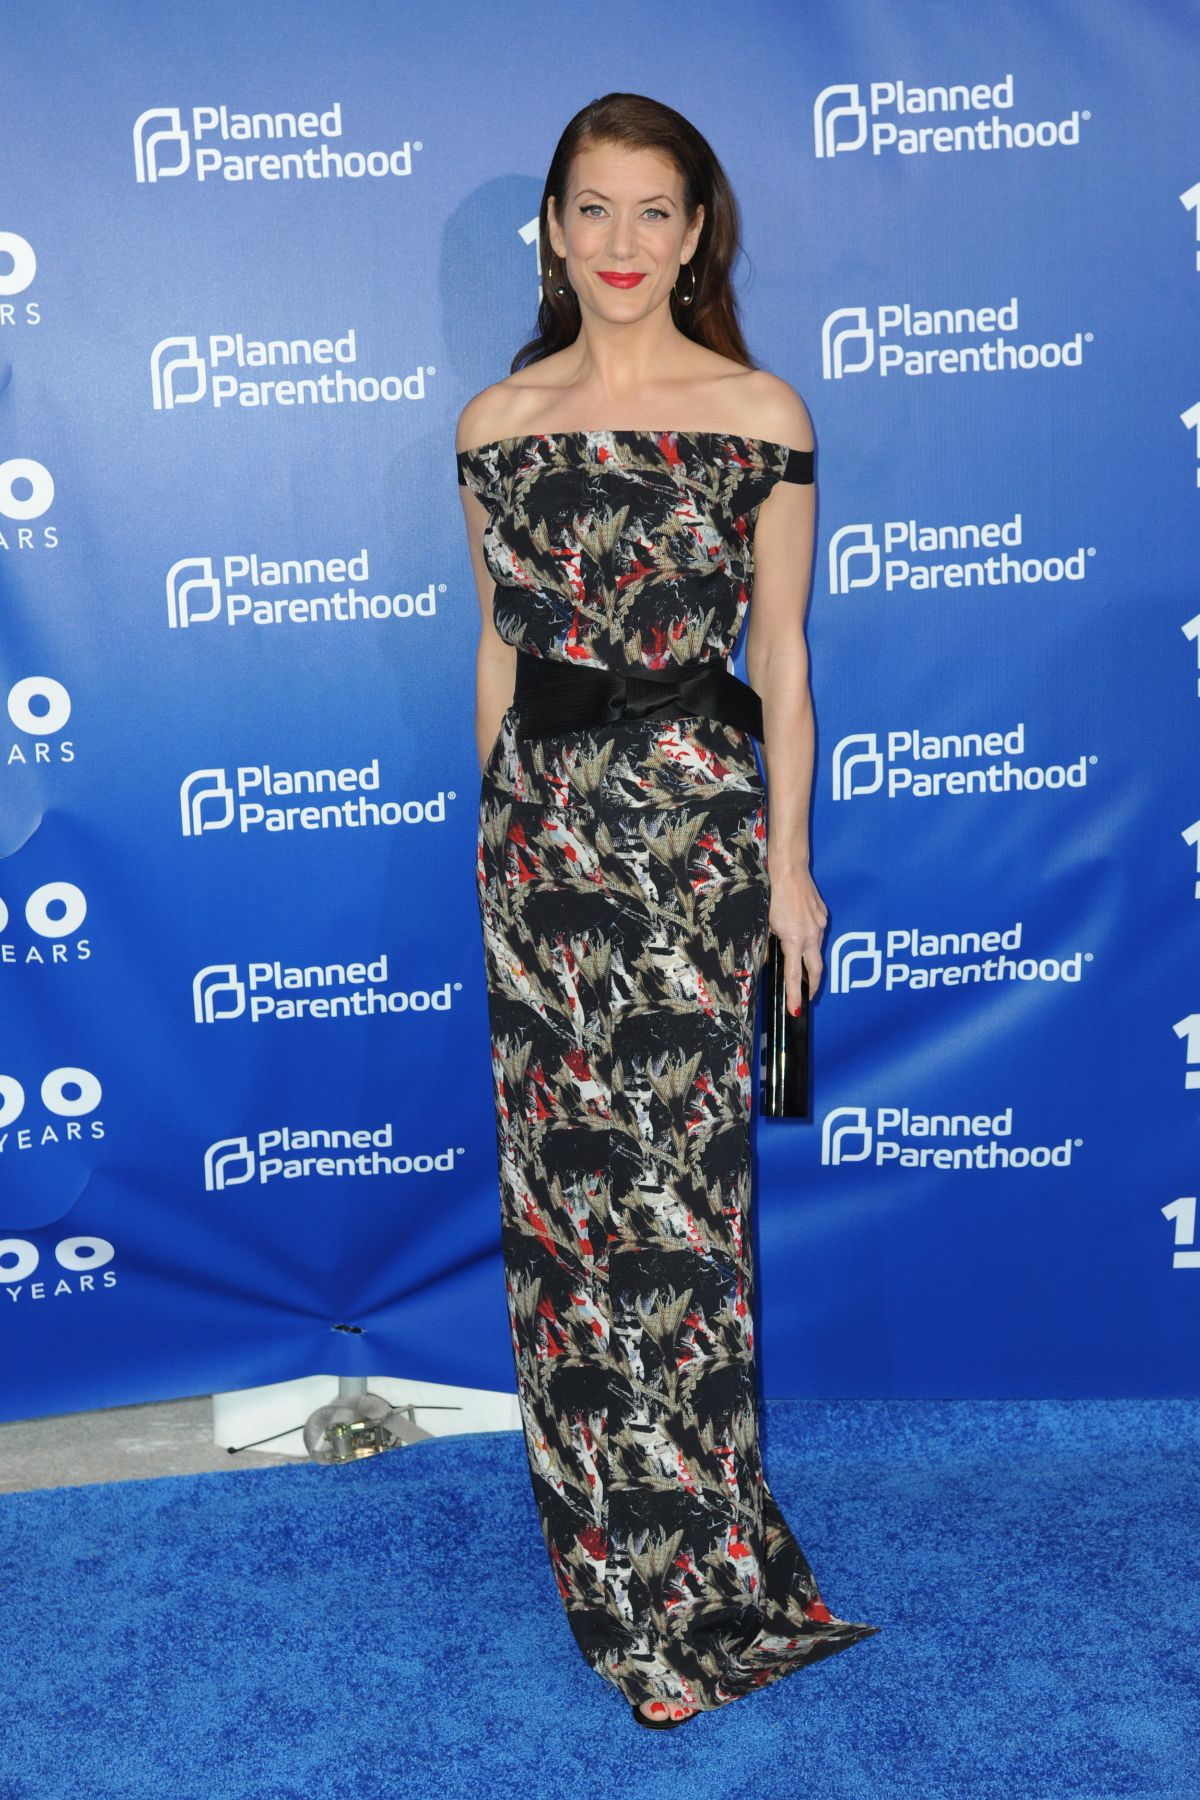 pics Kate walsh planned parenthood